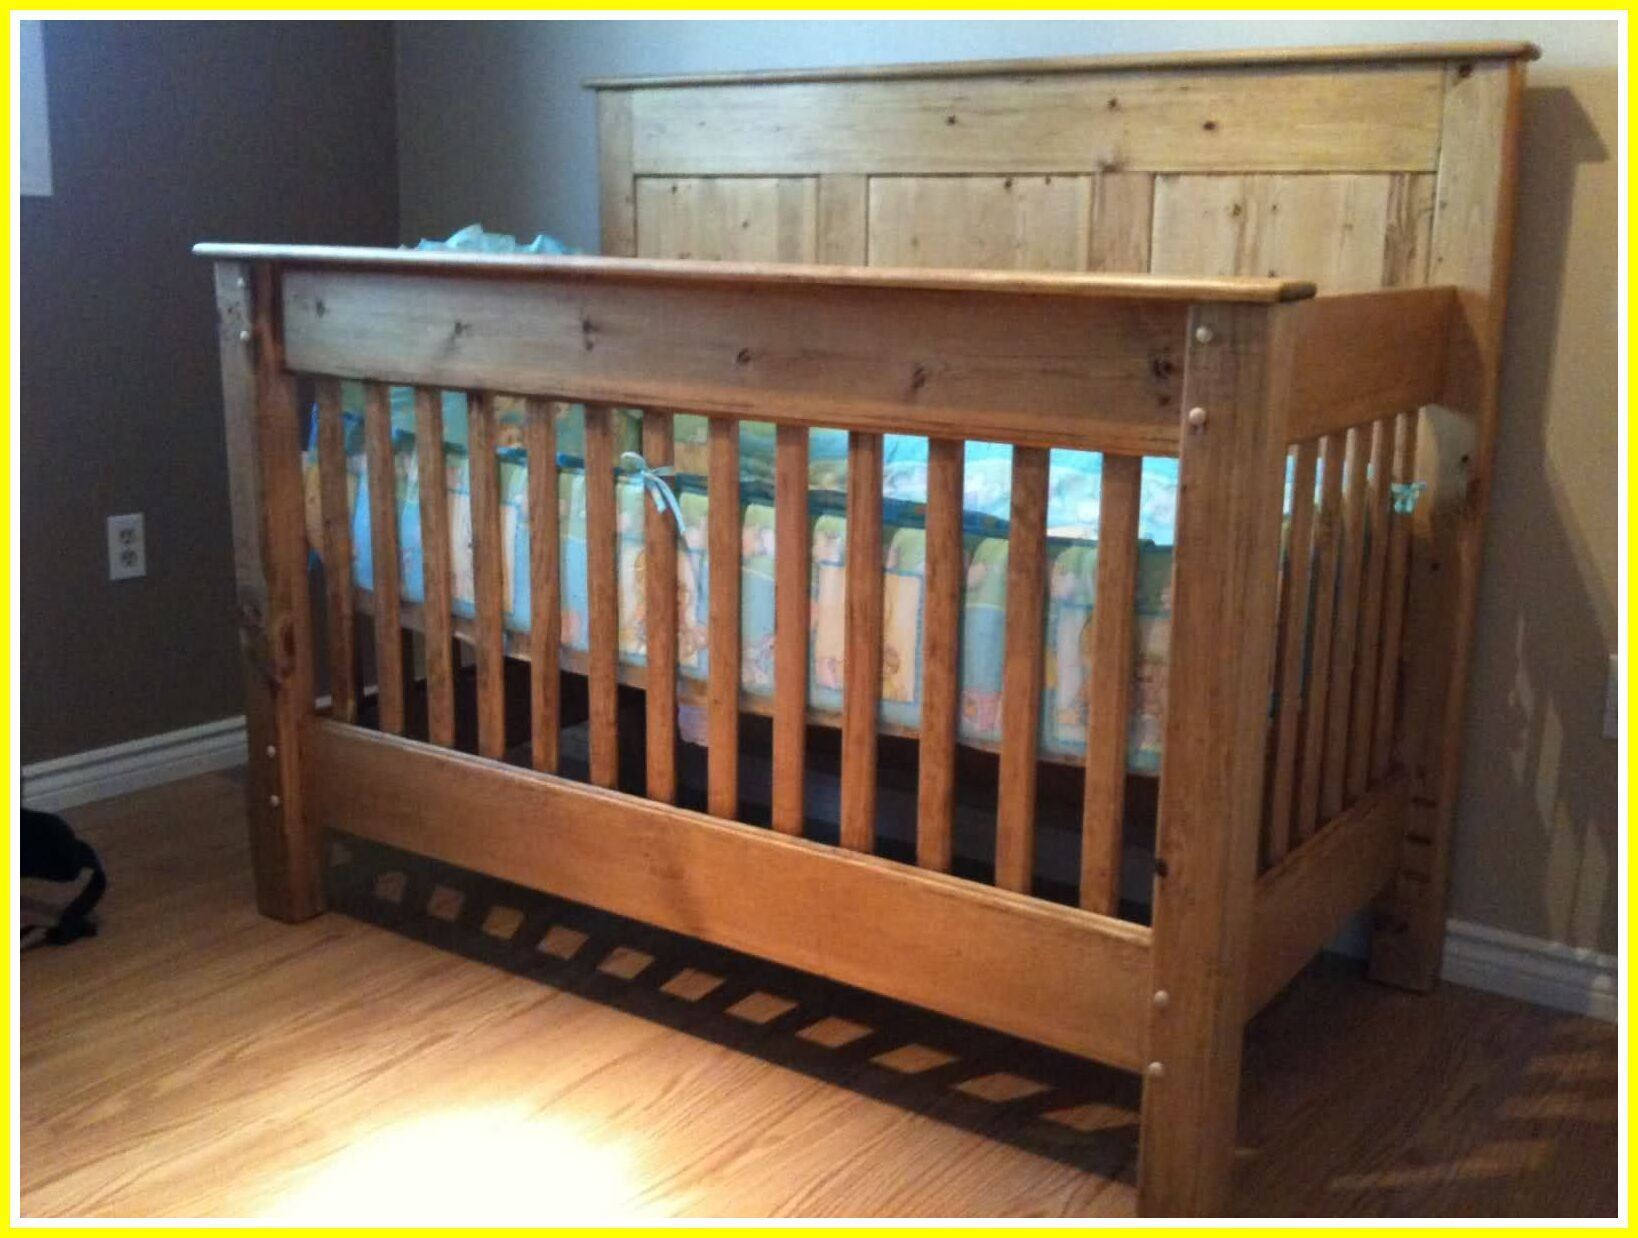 54 Reference Of Free Diy Baby Crib Plans In 2020 Baby Crib Designs Diy Baby Furniture Baby Crib Woodworking Plans